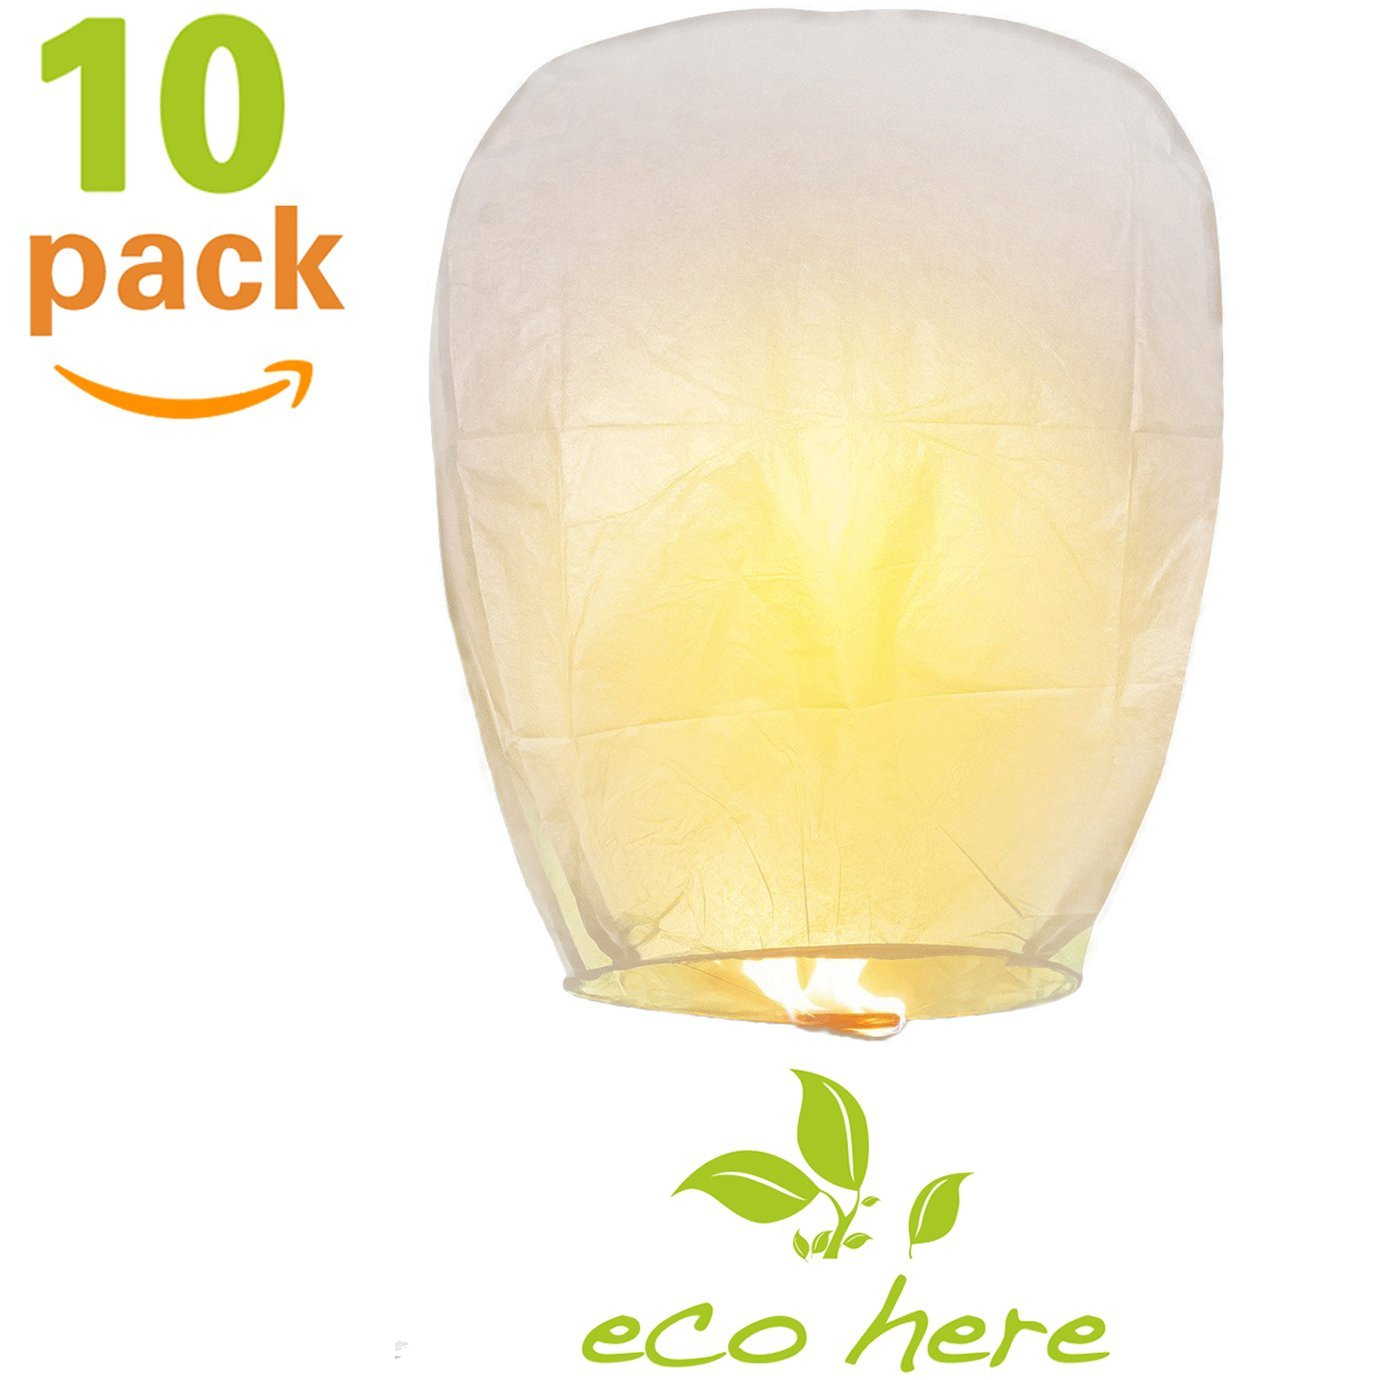 Floating Lanterns - Chinese Lanterns with Wax Block, Eco Friendly Biodegradable Sky Lanterns, White Paper Lanterns for Wedding, Birthday, Memorial, Party, Wishing Lanterns (10, White)